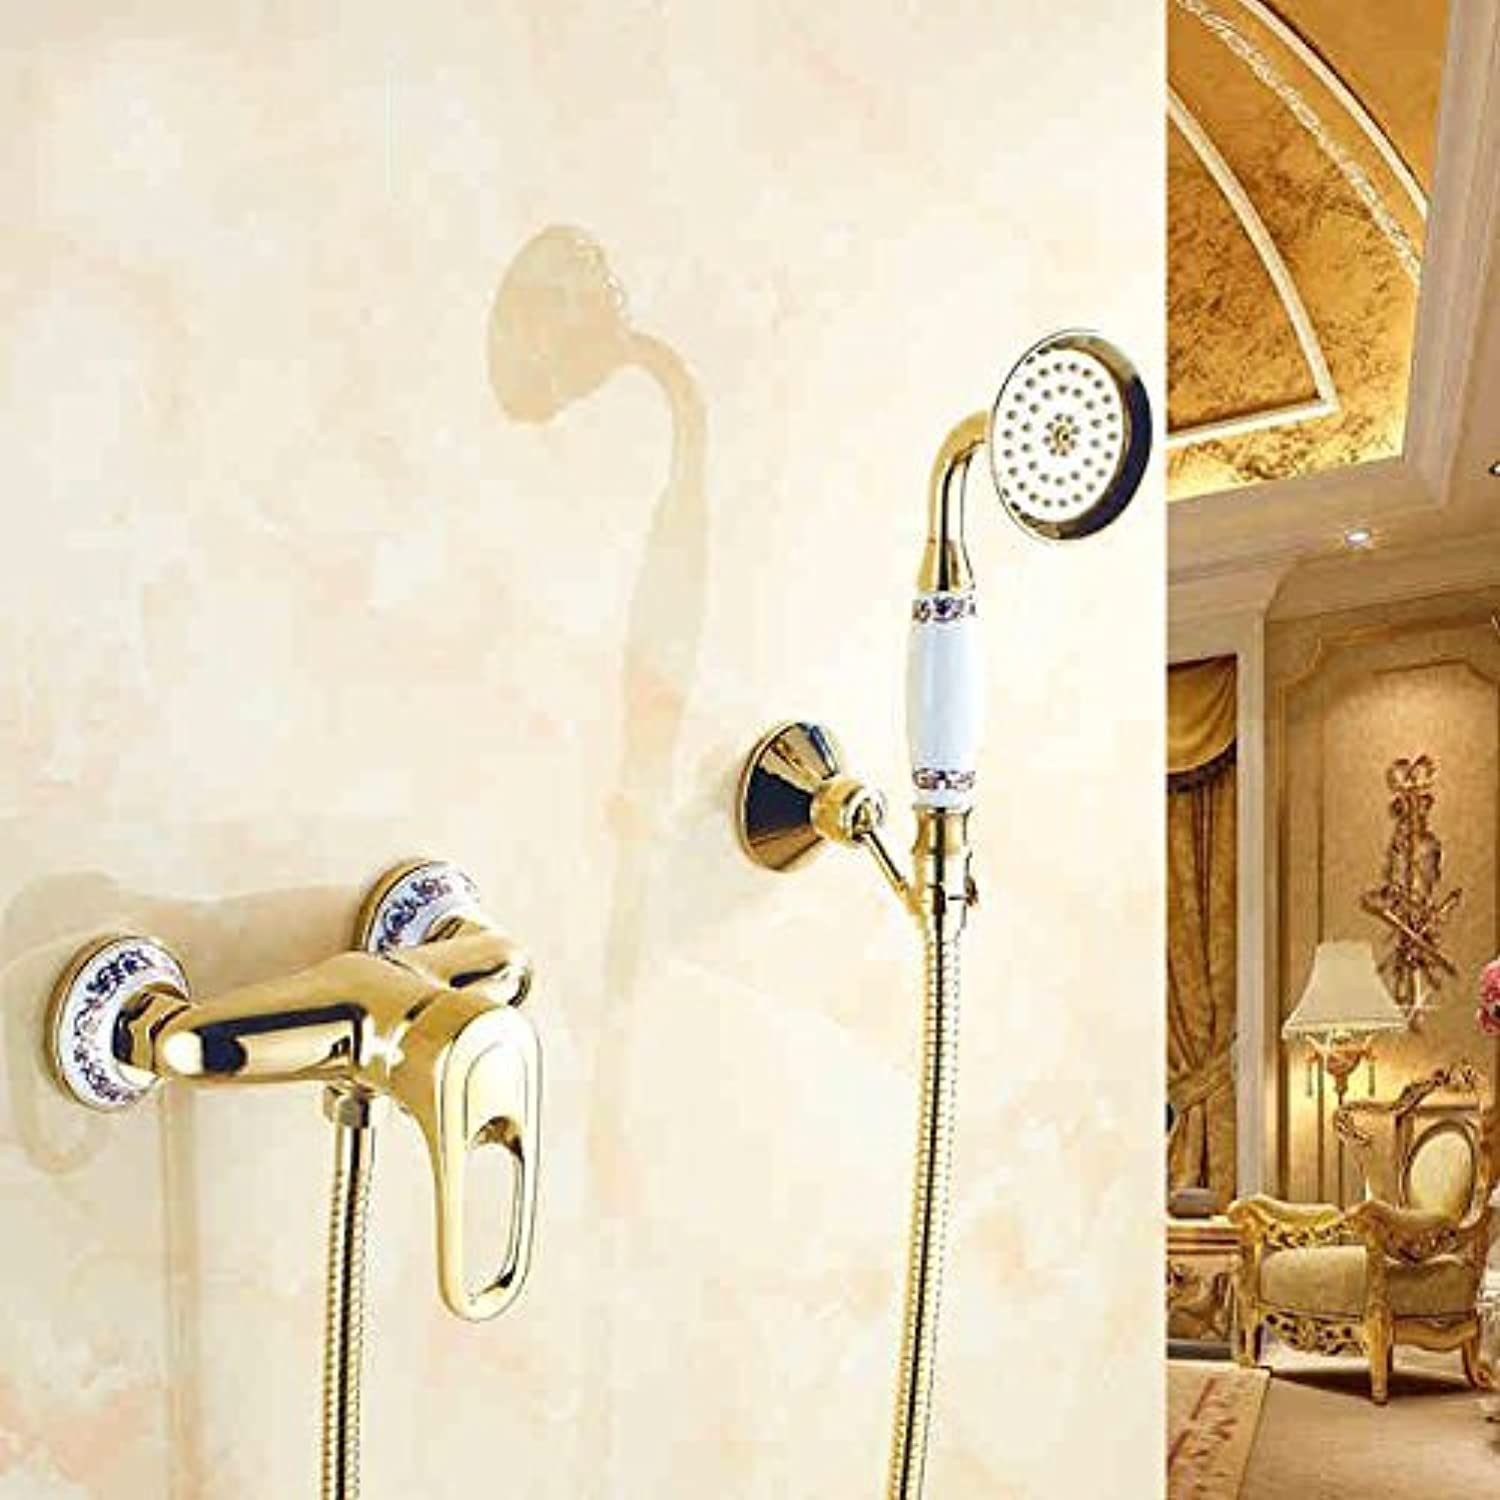 To The timely Wall gold Plated bluee Copper White & Flower Shower Set